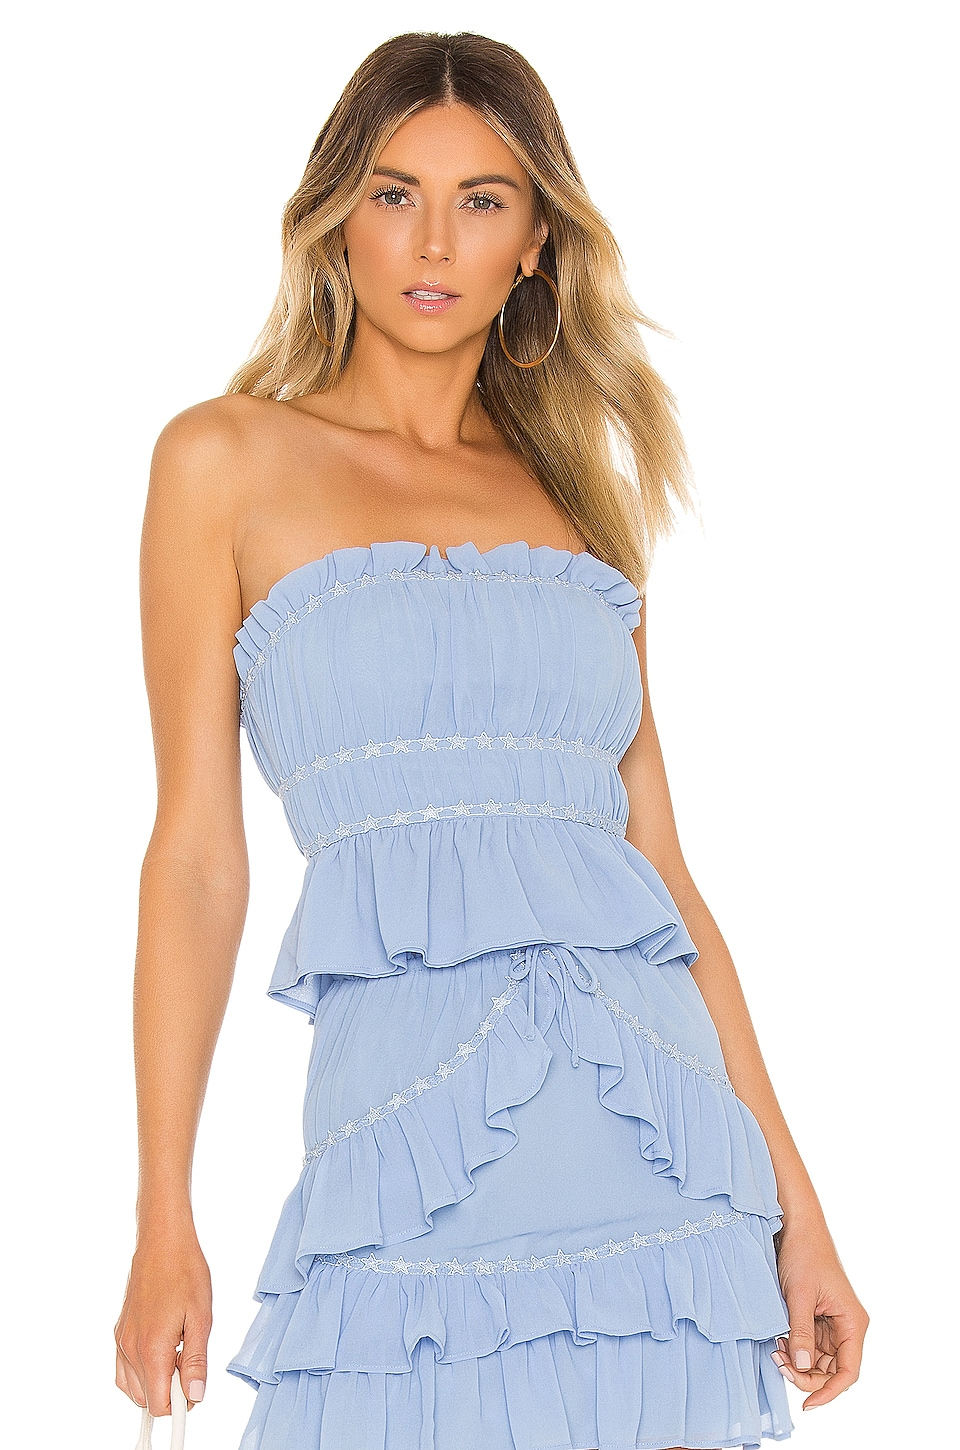 Lovers + Friends Holly Top in Powder Blue